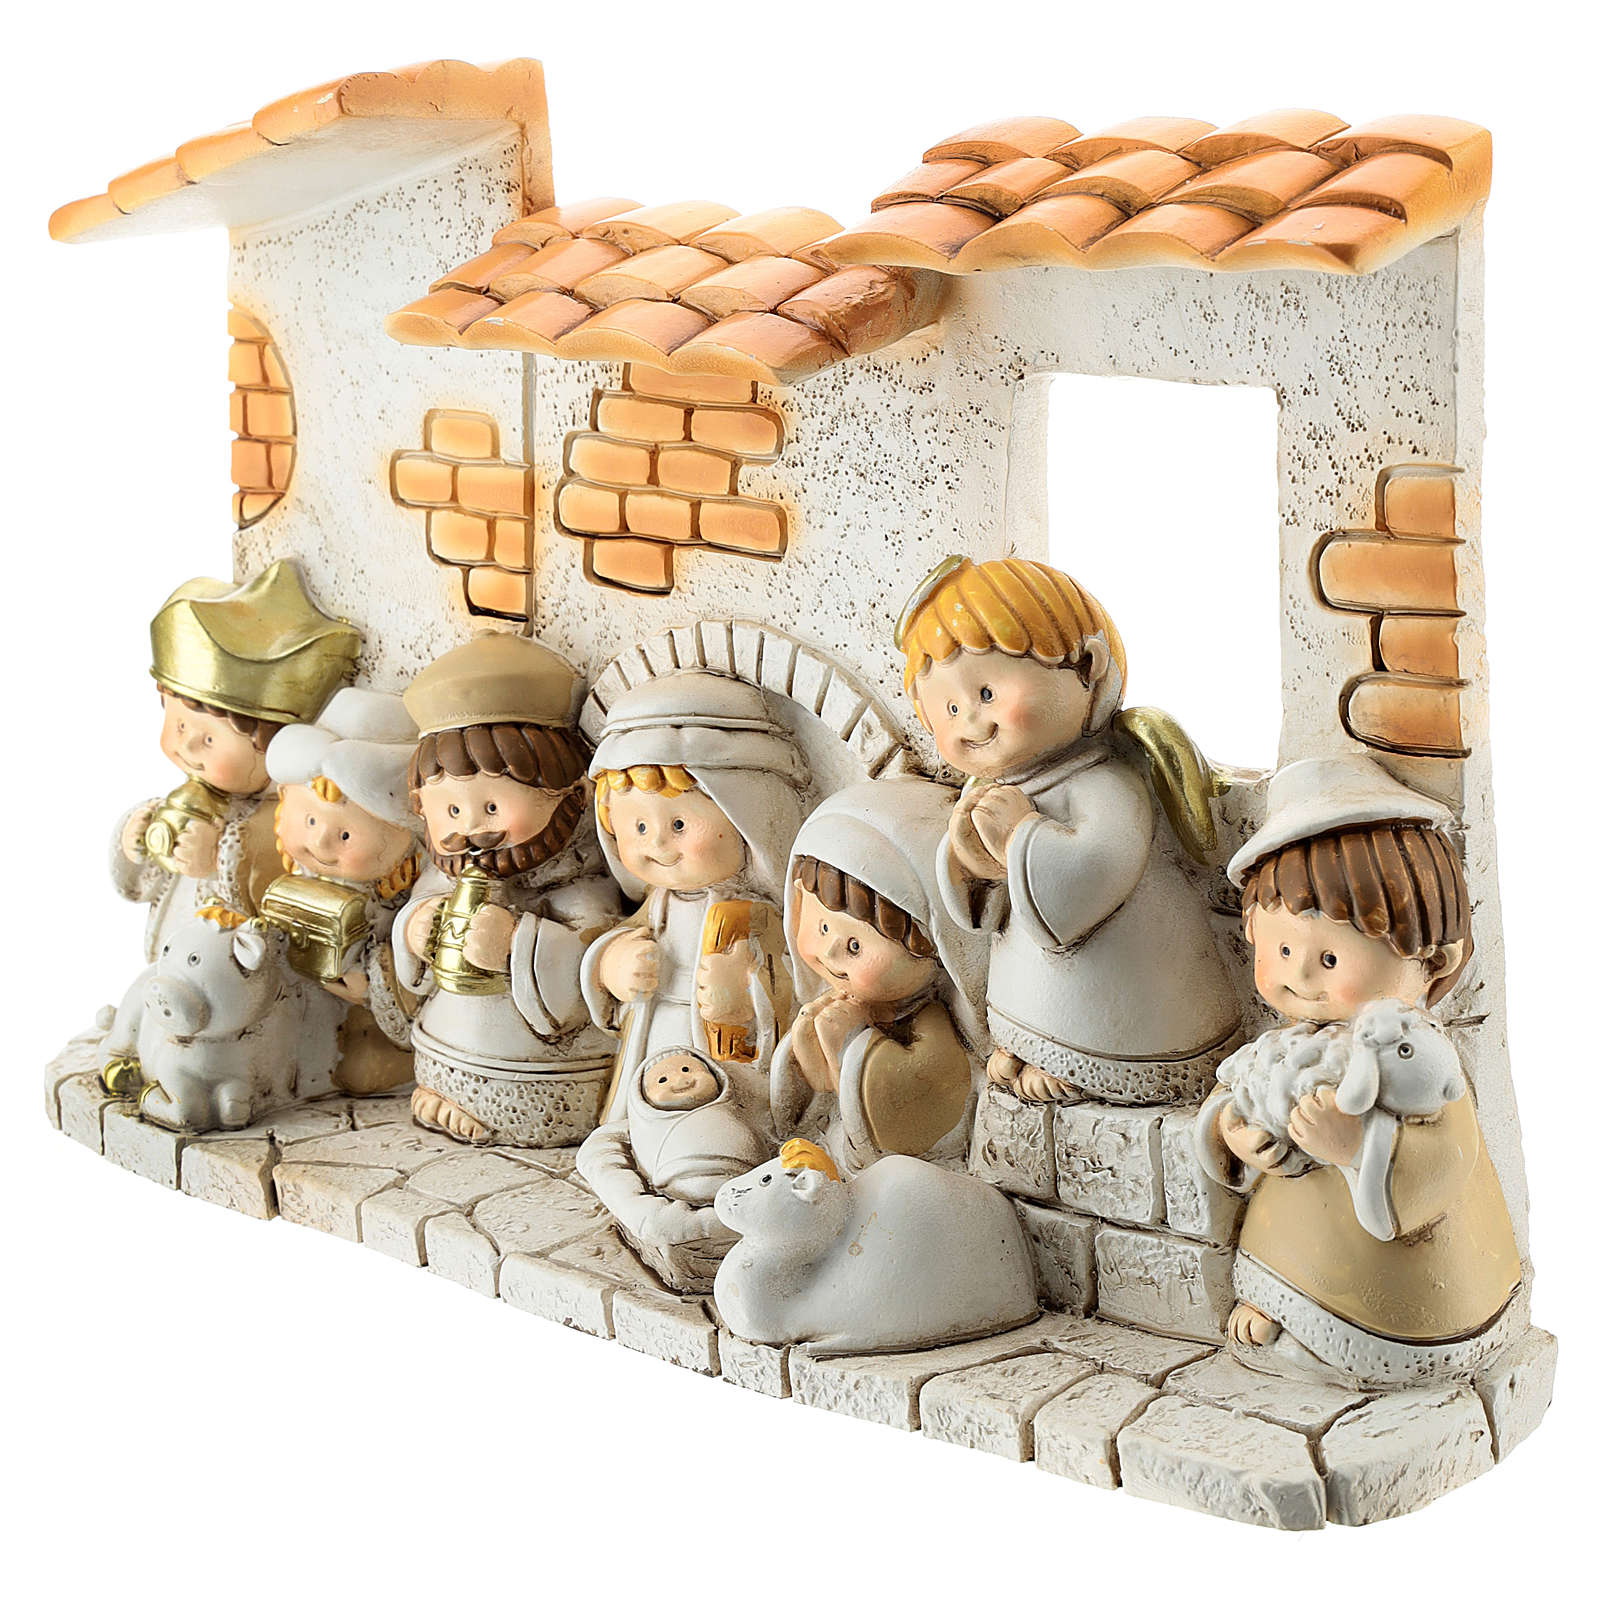 Nativity scene with hut made of resin with 10 characters 10x15 cm, children's line 4